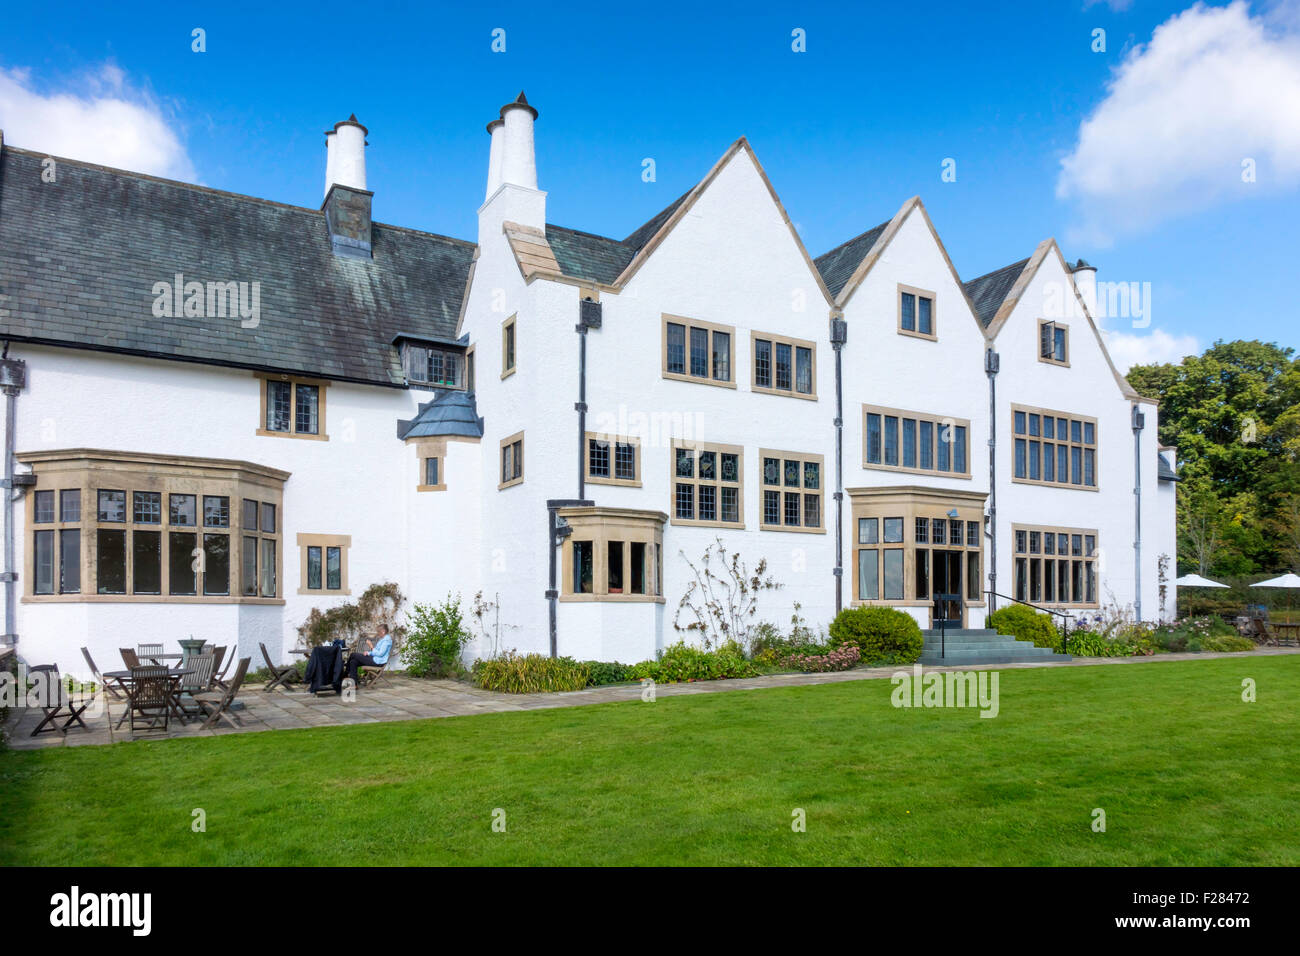 Grade 1 Listed Blackwell House designed by Baillie Scott built 1900 exhibiting Arts and Crafts treasures Stock Photo